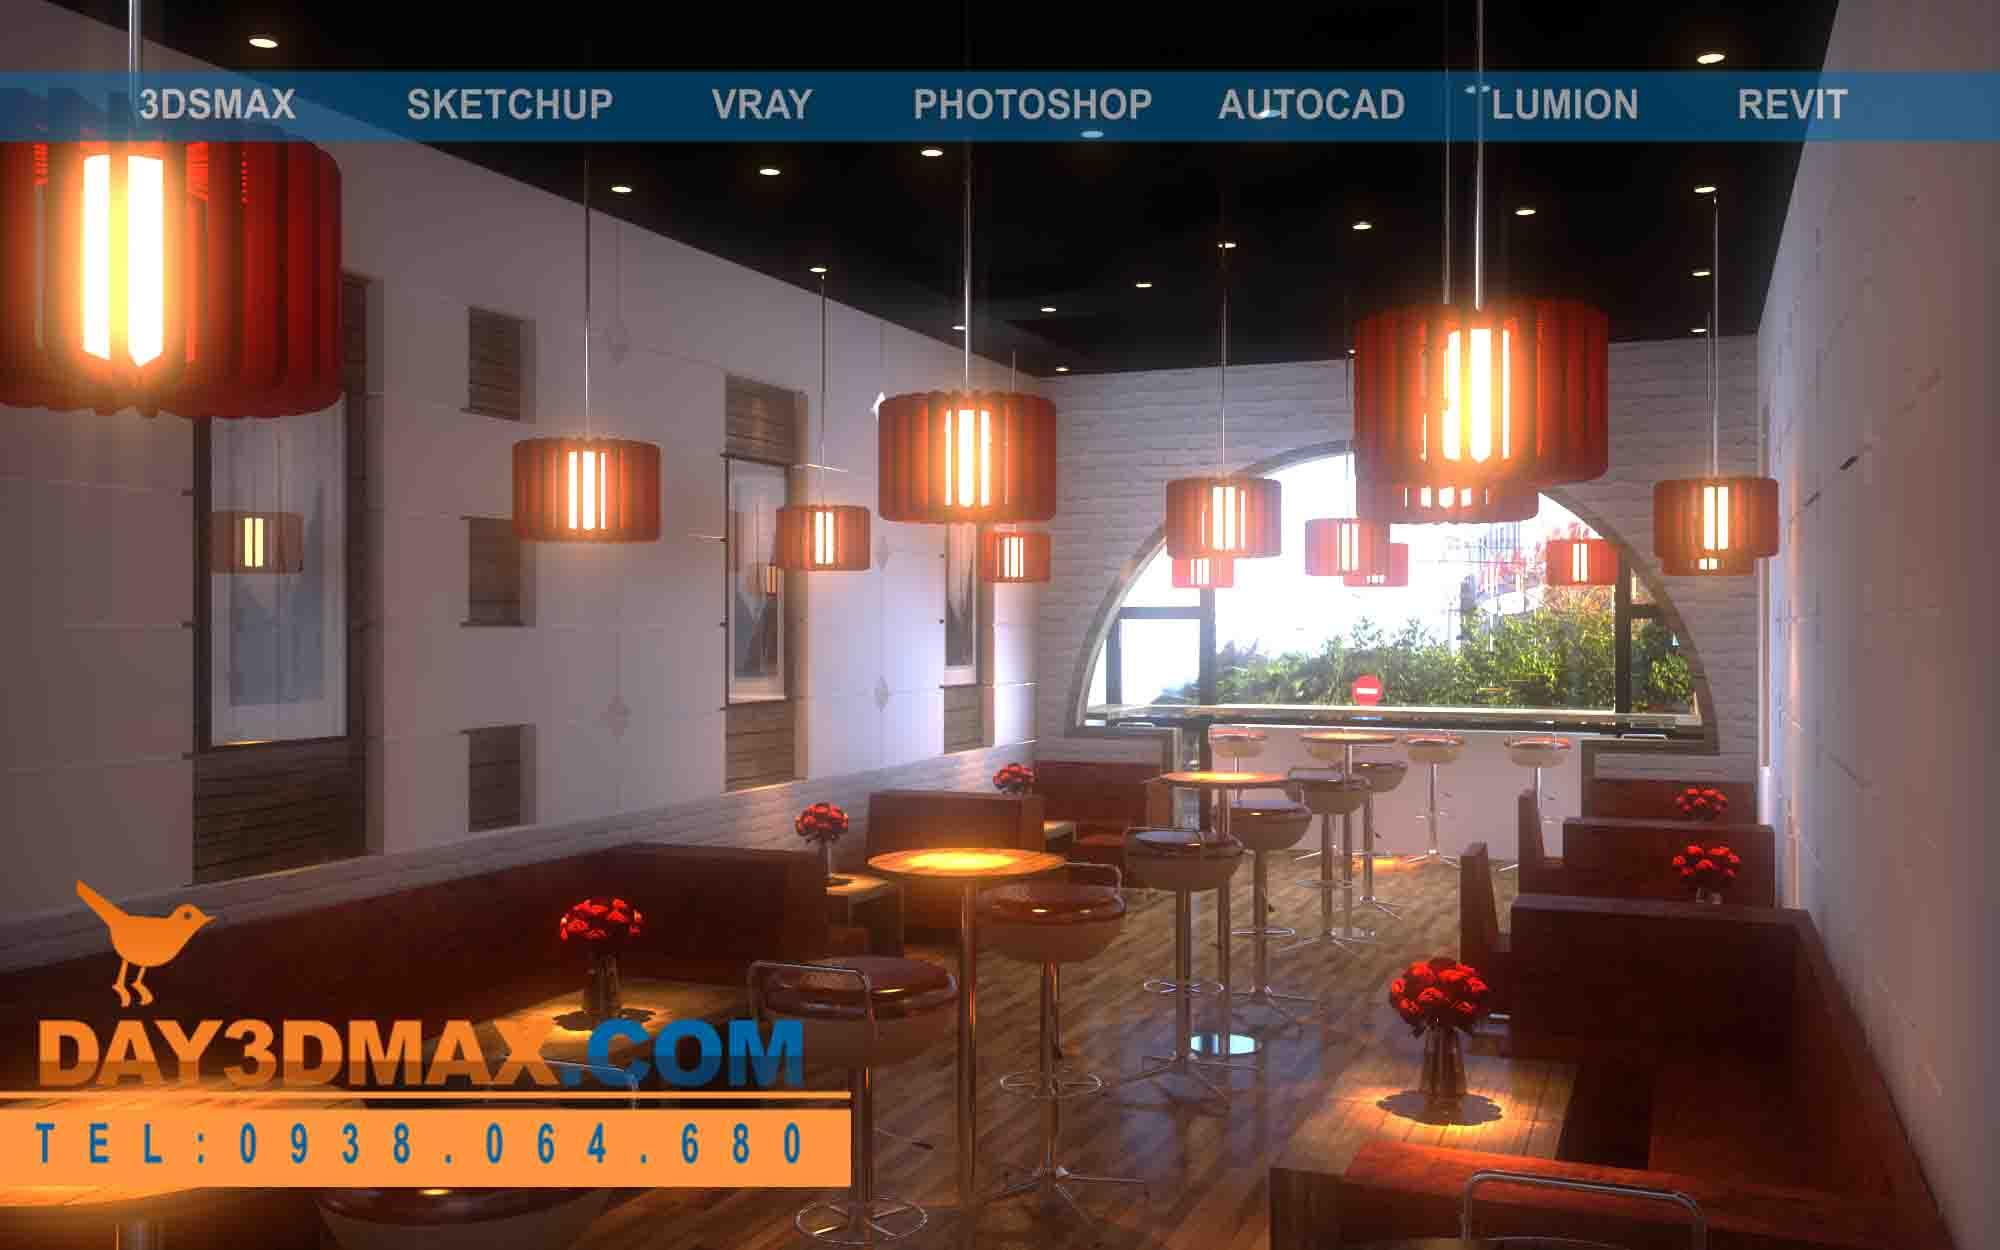 Online 3d courses Model and Render an interior of a coffee